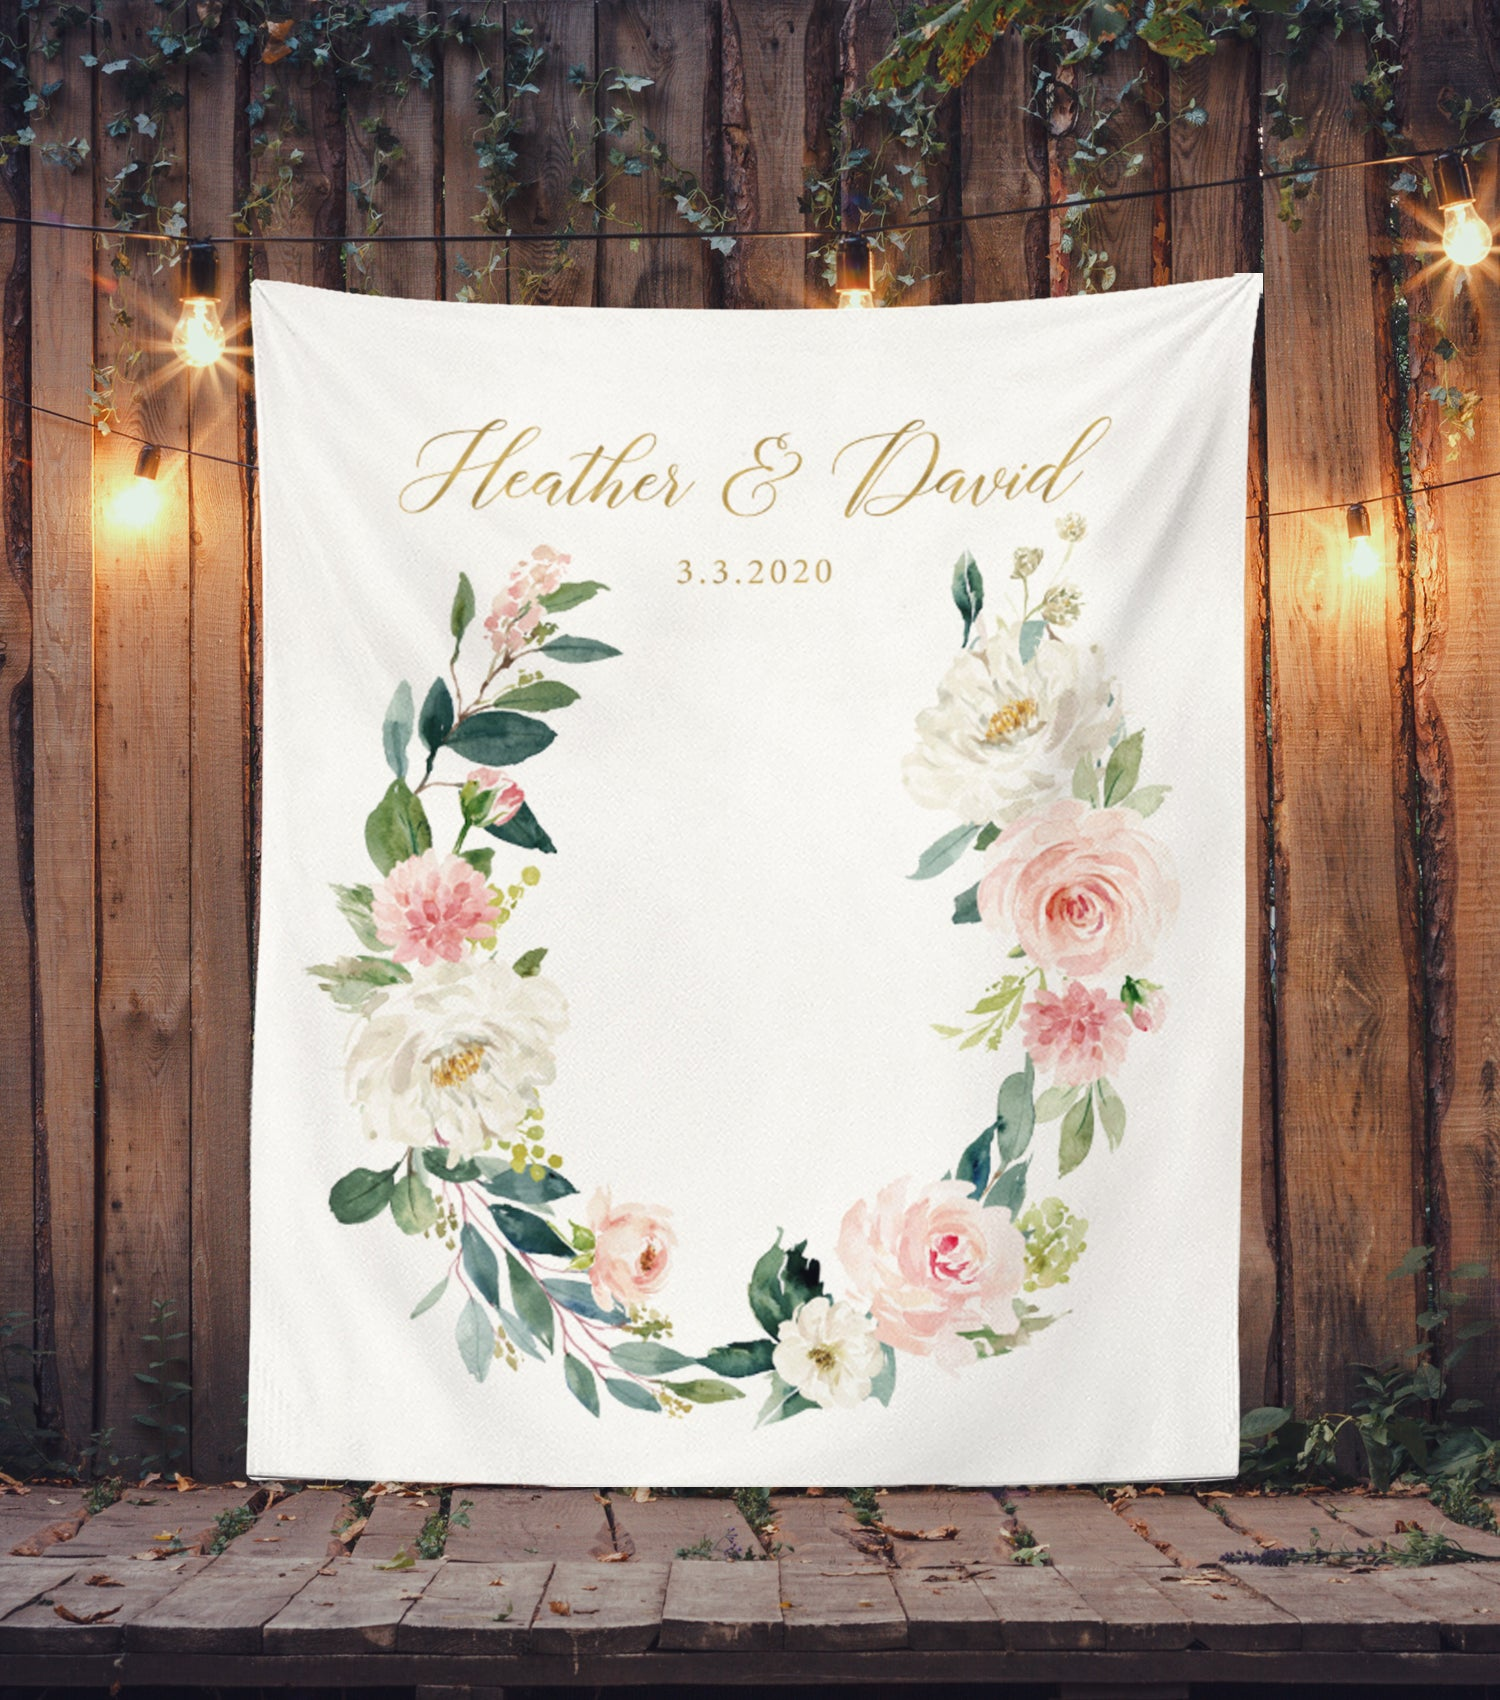 Blush Wedding Decorations, Floral Wedding Backdrop for Sale | Blushing Drops